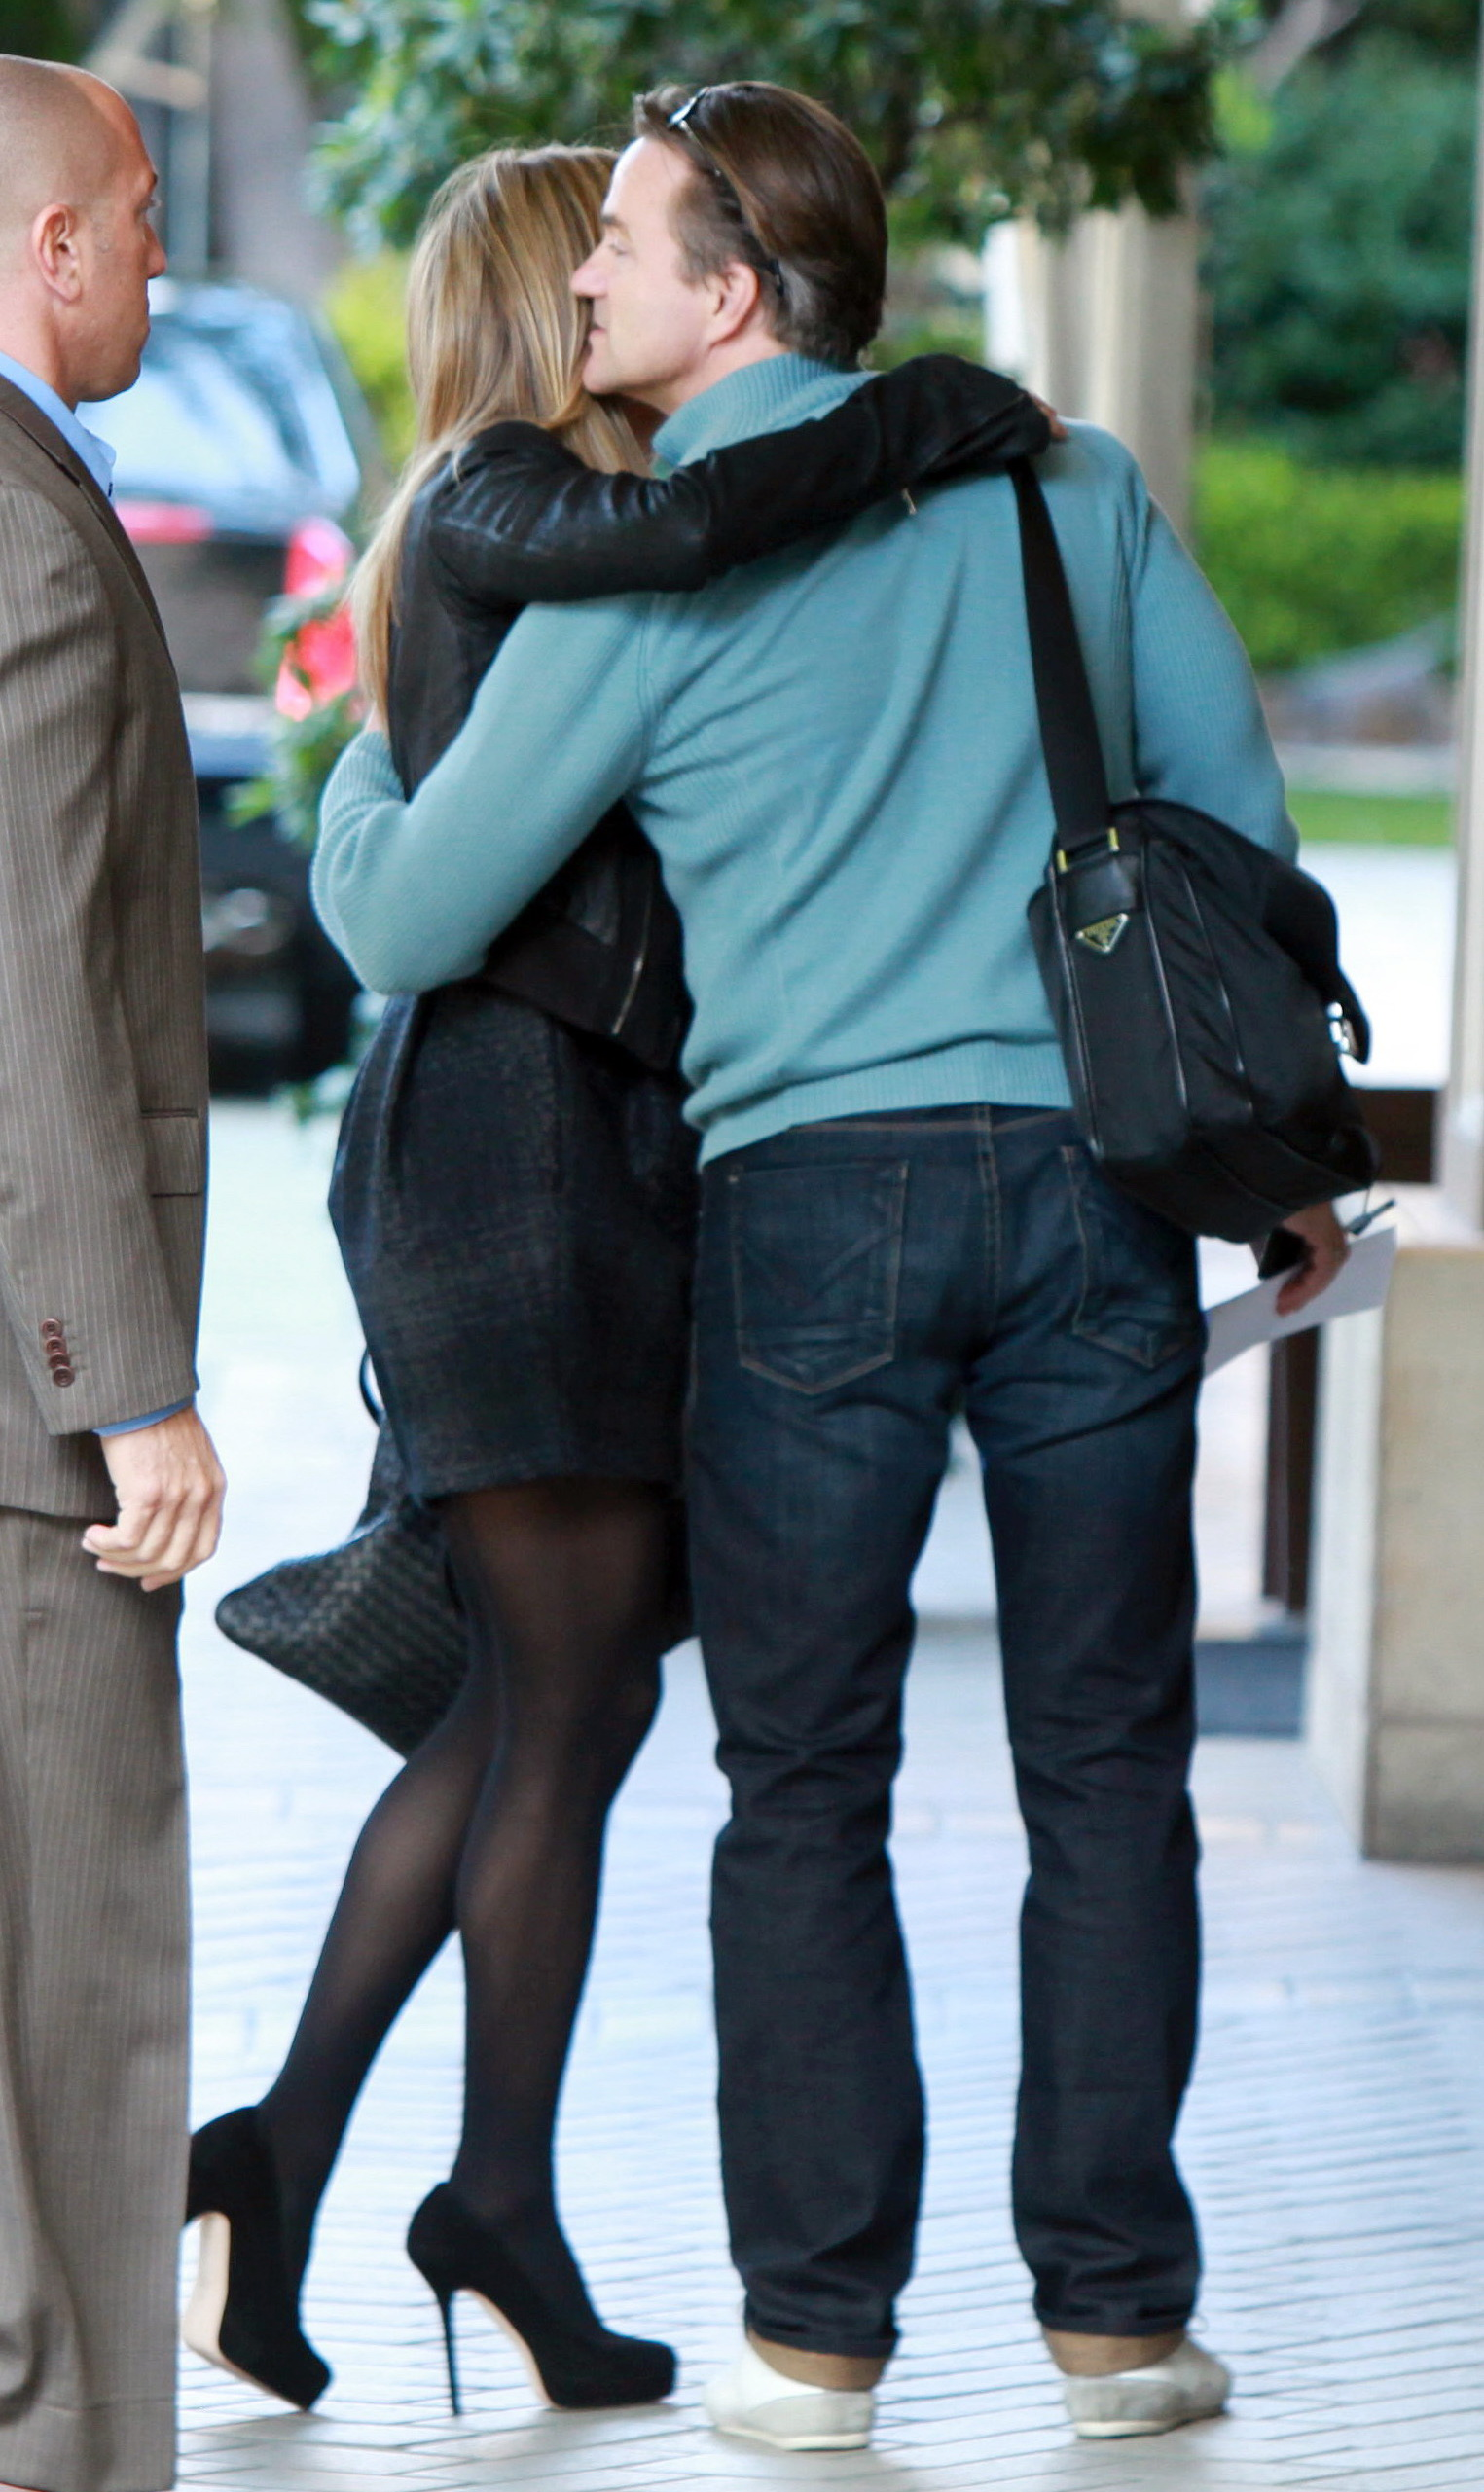 61954_Tikipeter_Jennifer_Aniston_with_a_mystery_man_in_Beverly_Hills_012_122_2lo.jpg